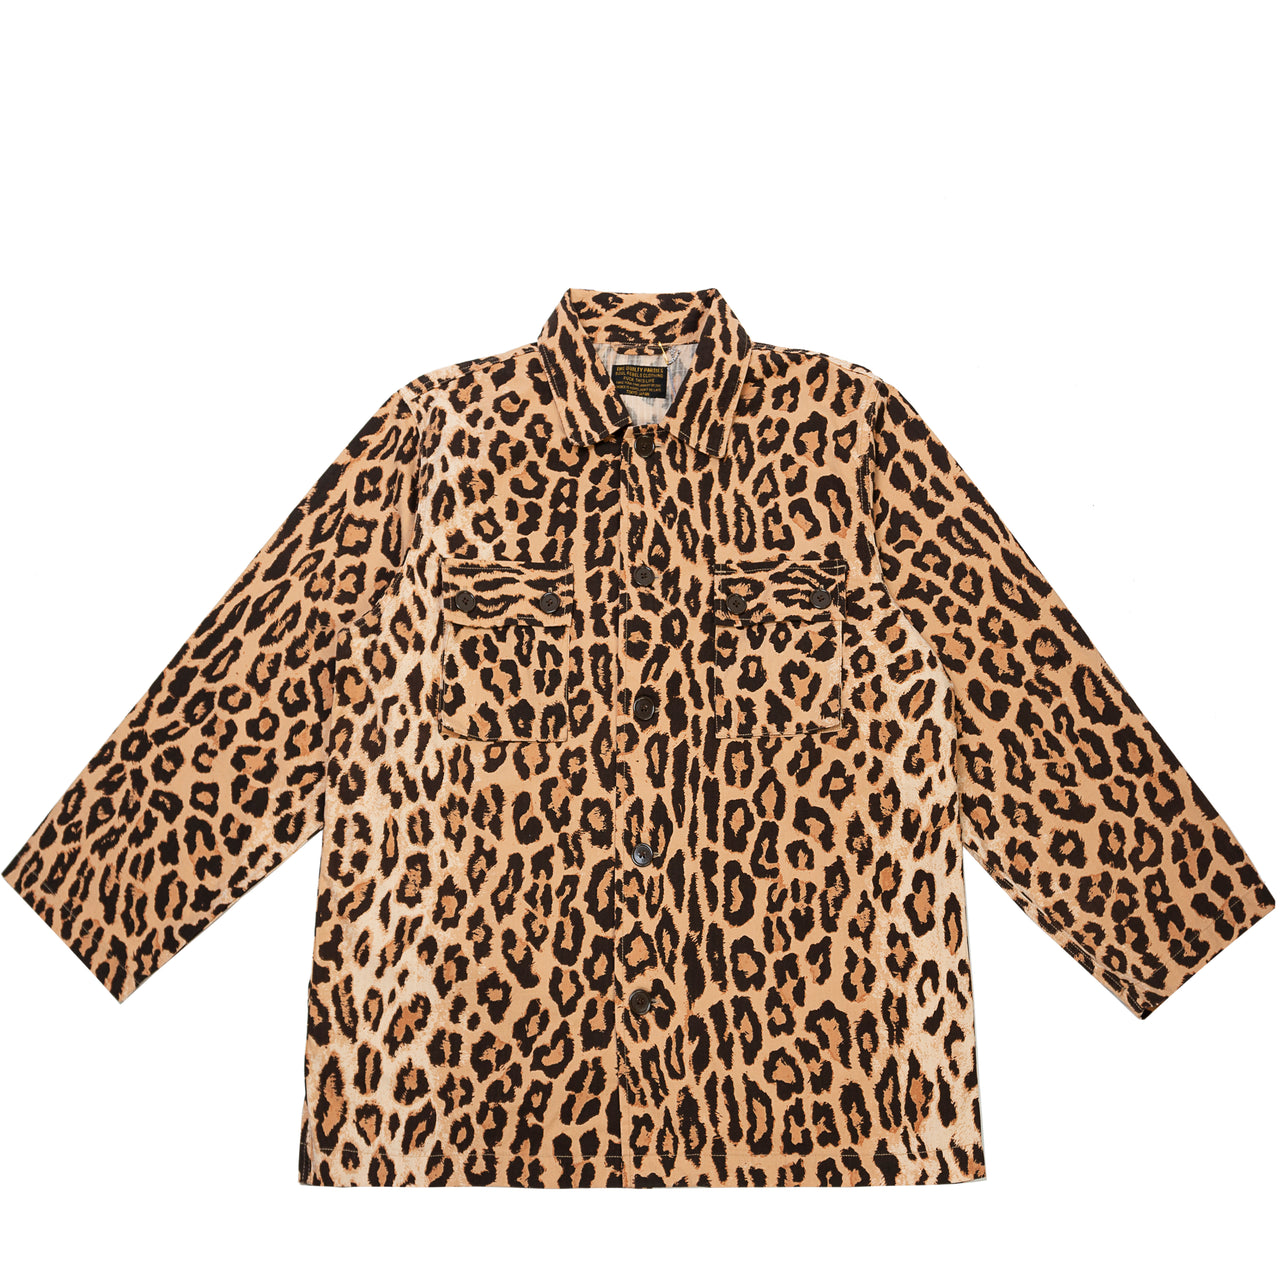 LEOPARD ARMY SHIRT ( TYPE-1 )